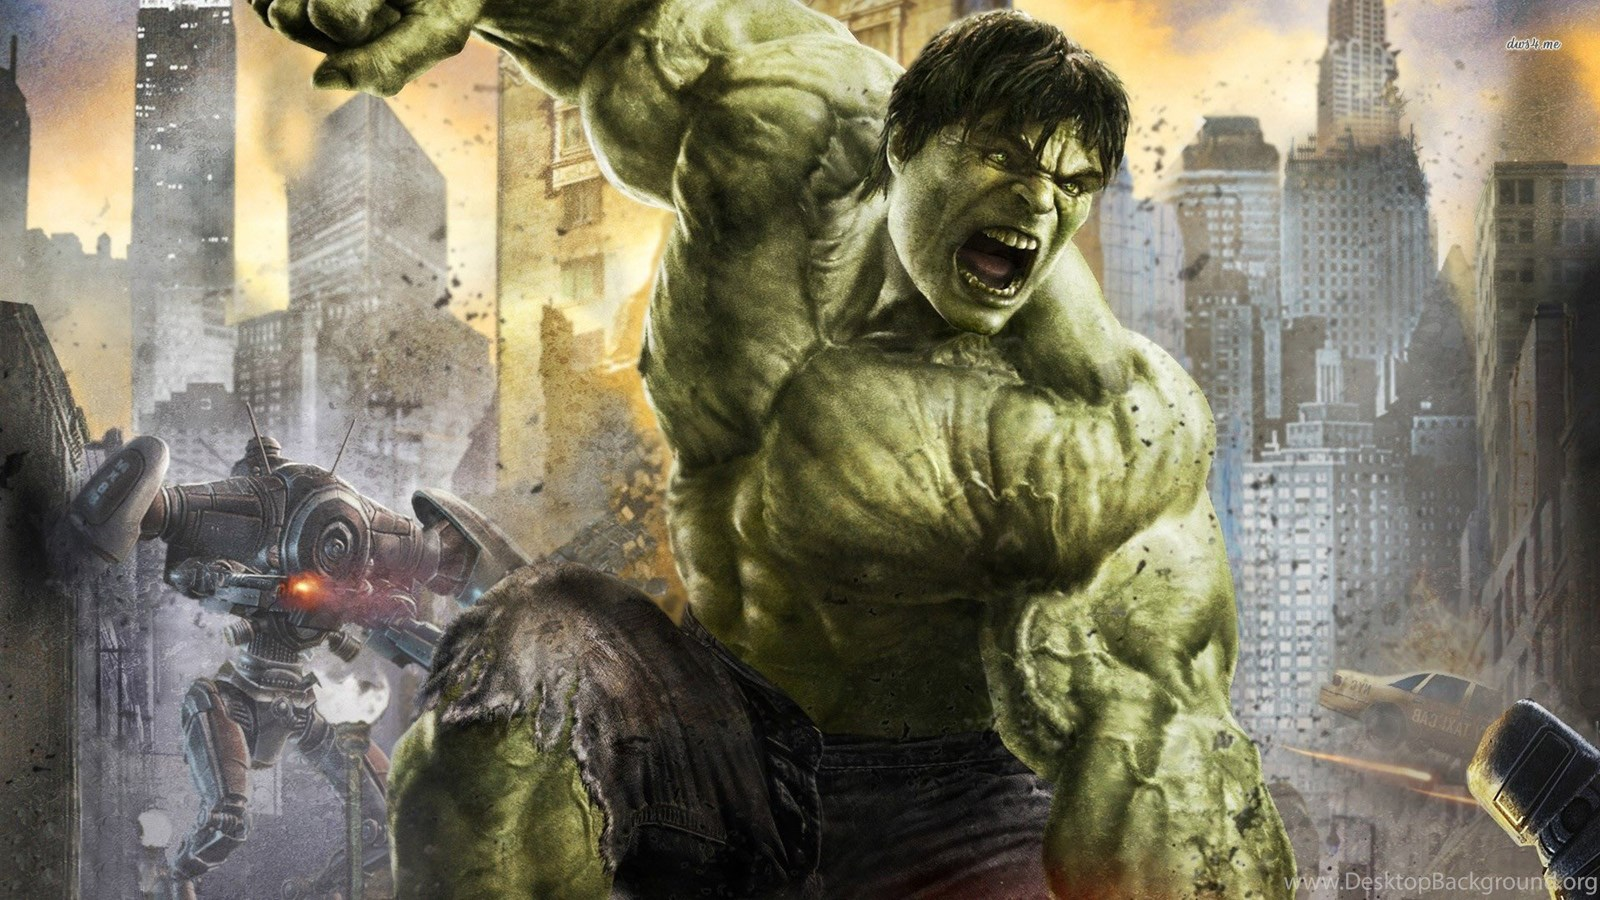 Download The Incredible Hulk Moviehome